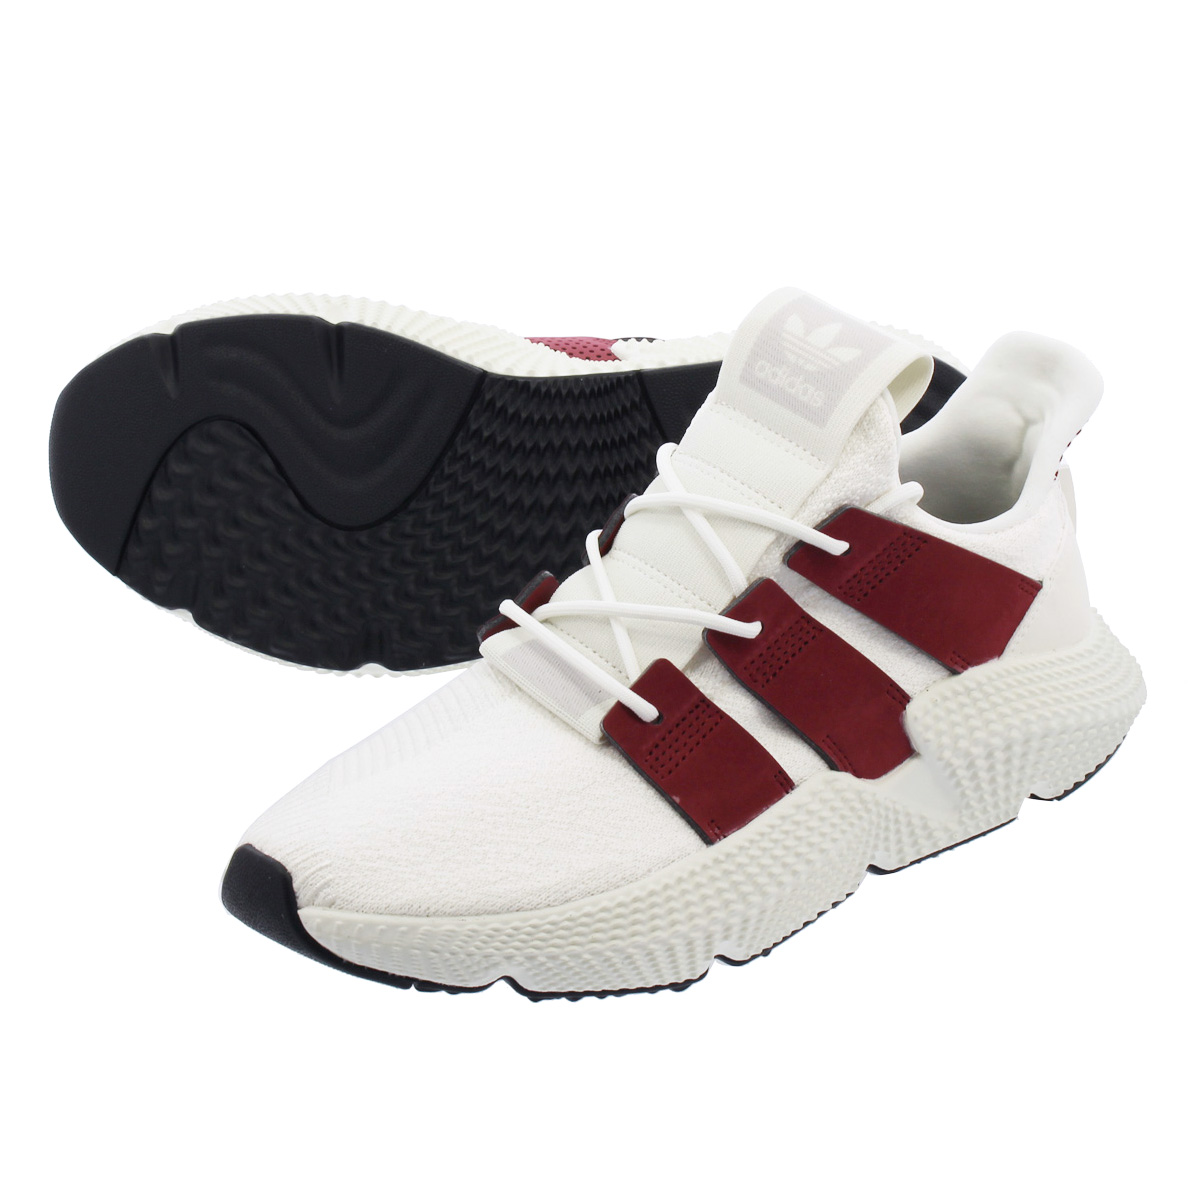 adidas PROPHERE アディダス プロフィア CLOUD WHITE/NOBLE MAROON/CORE BLACK d96658